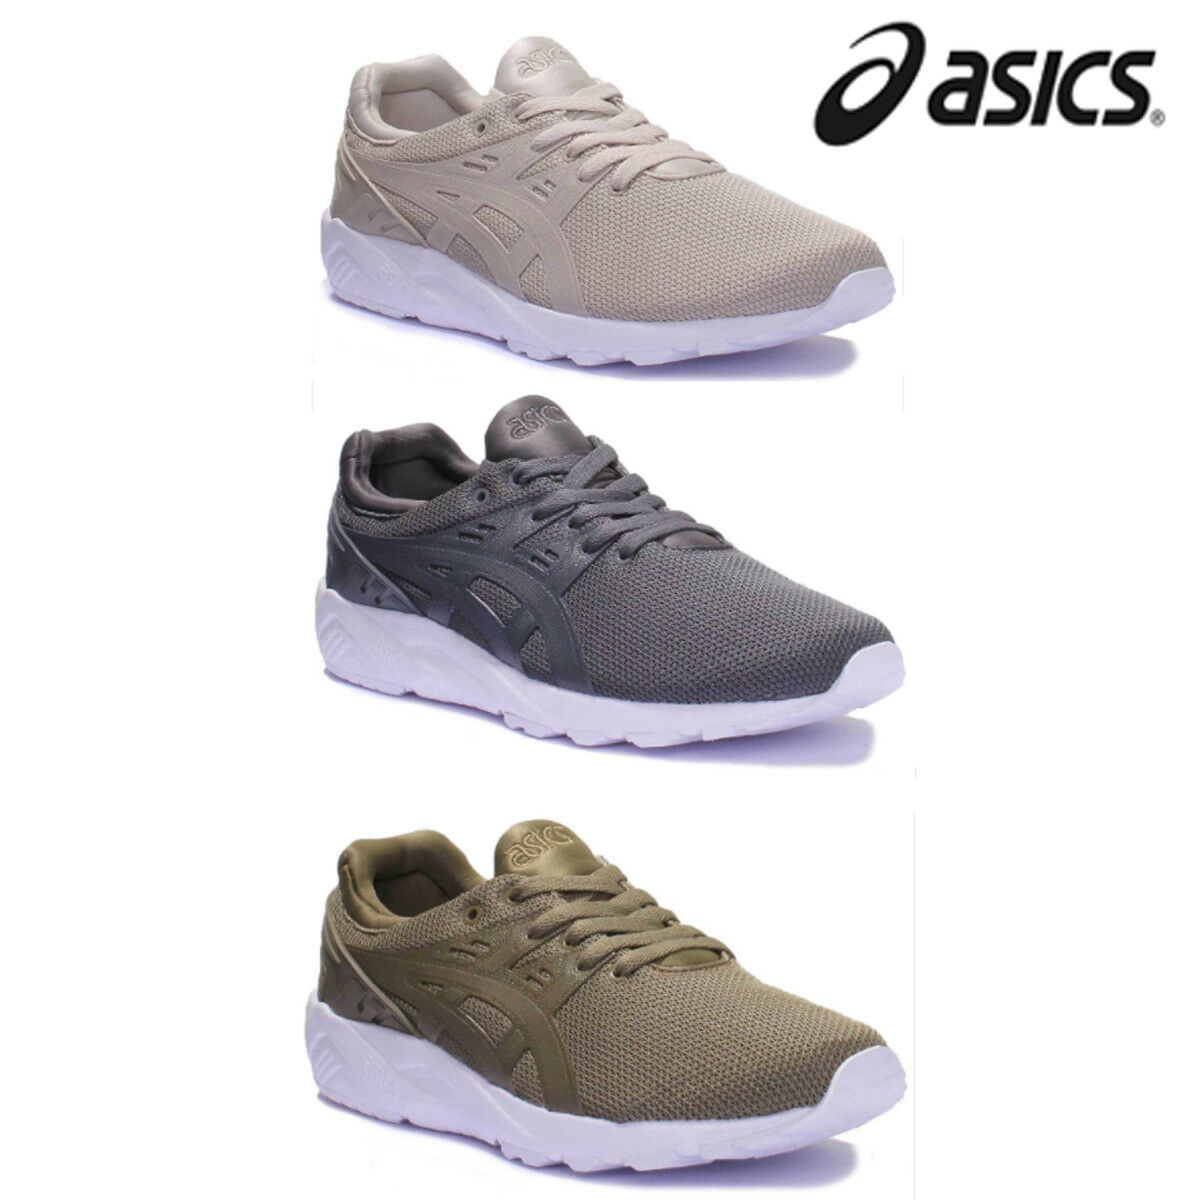 Asics Asics Asics Gel Kayano EVO Feathered Grey Men Mesh Trainers  7 - 12.5 097e4e